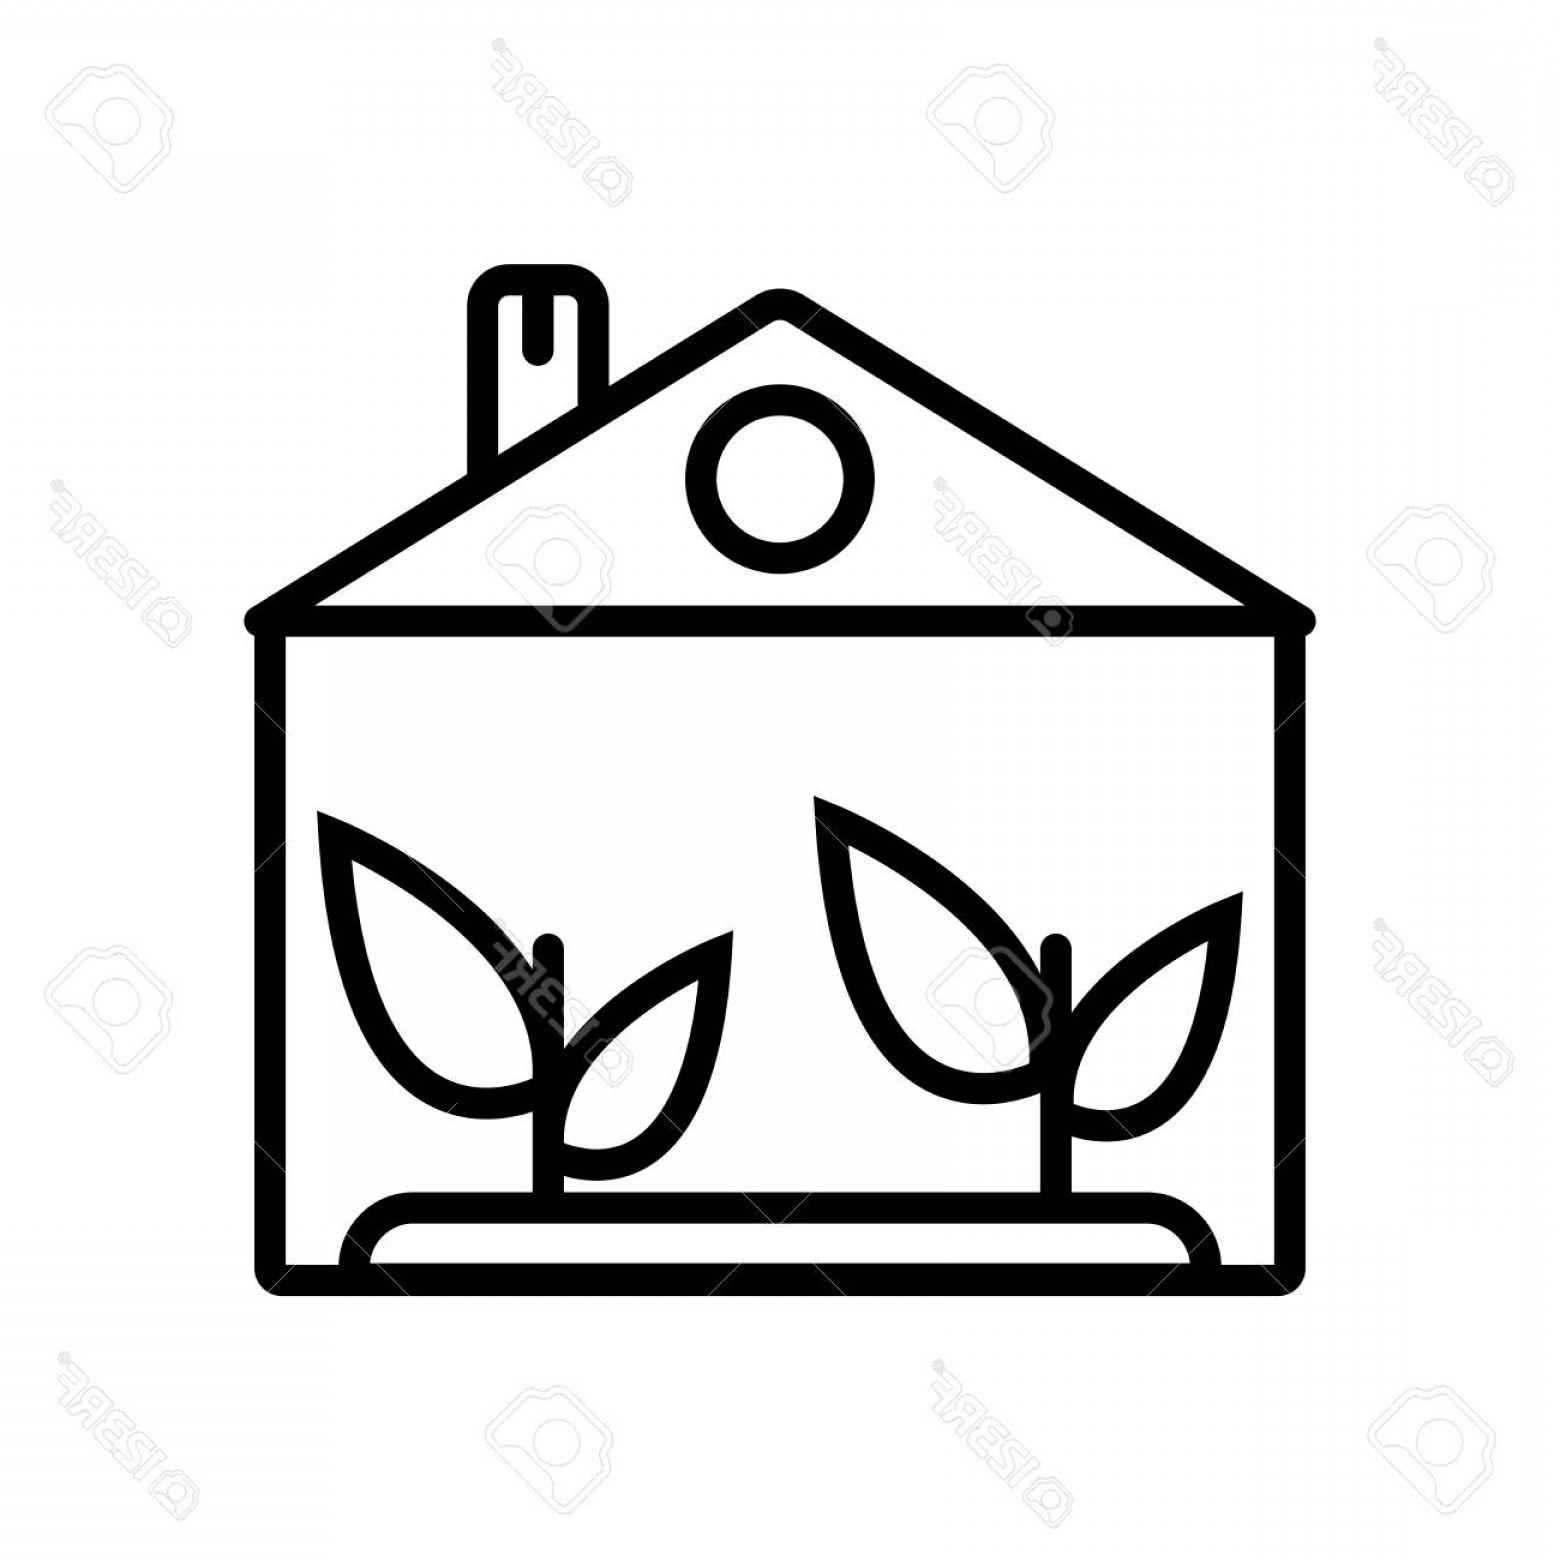 Black And White Vector Greenhouse: Photostock Vector Greenhouse Icon Vector Isolated On White Background